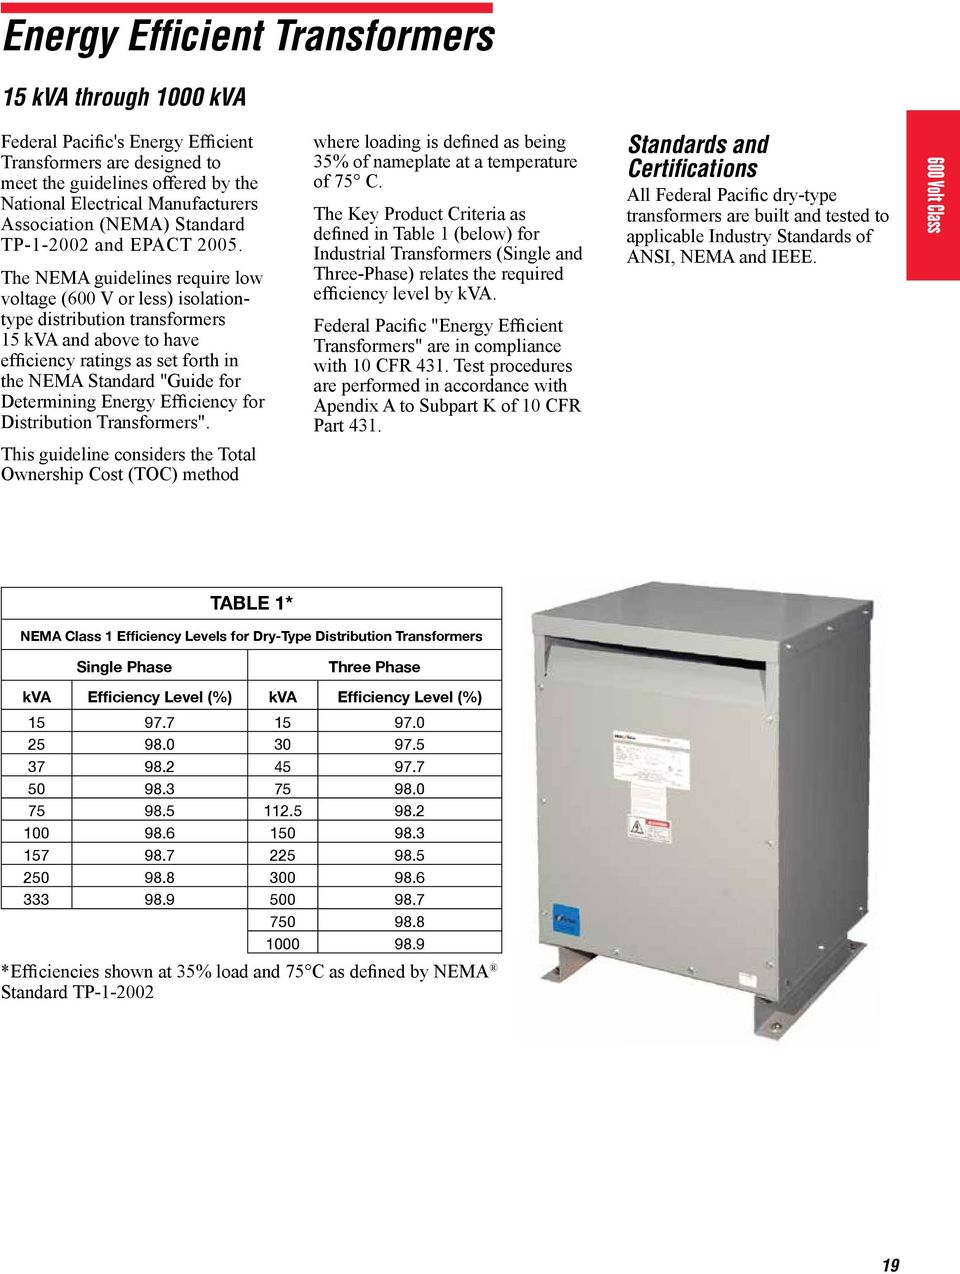 Drytype Transformer Testing Open Electrical 600 Volt Class Transformers Pdf The Nema Guidelines Require Low Voltage V Or Less Isolationtype Distribution 15